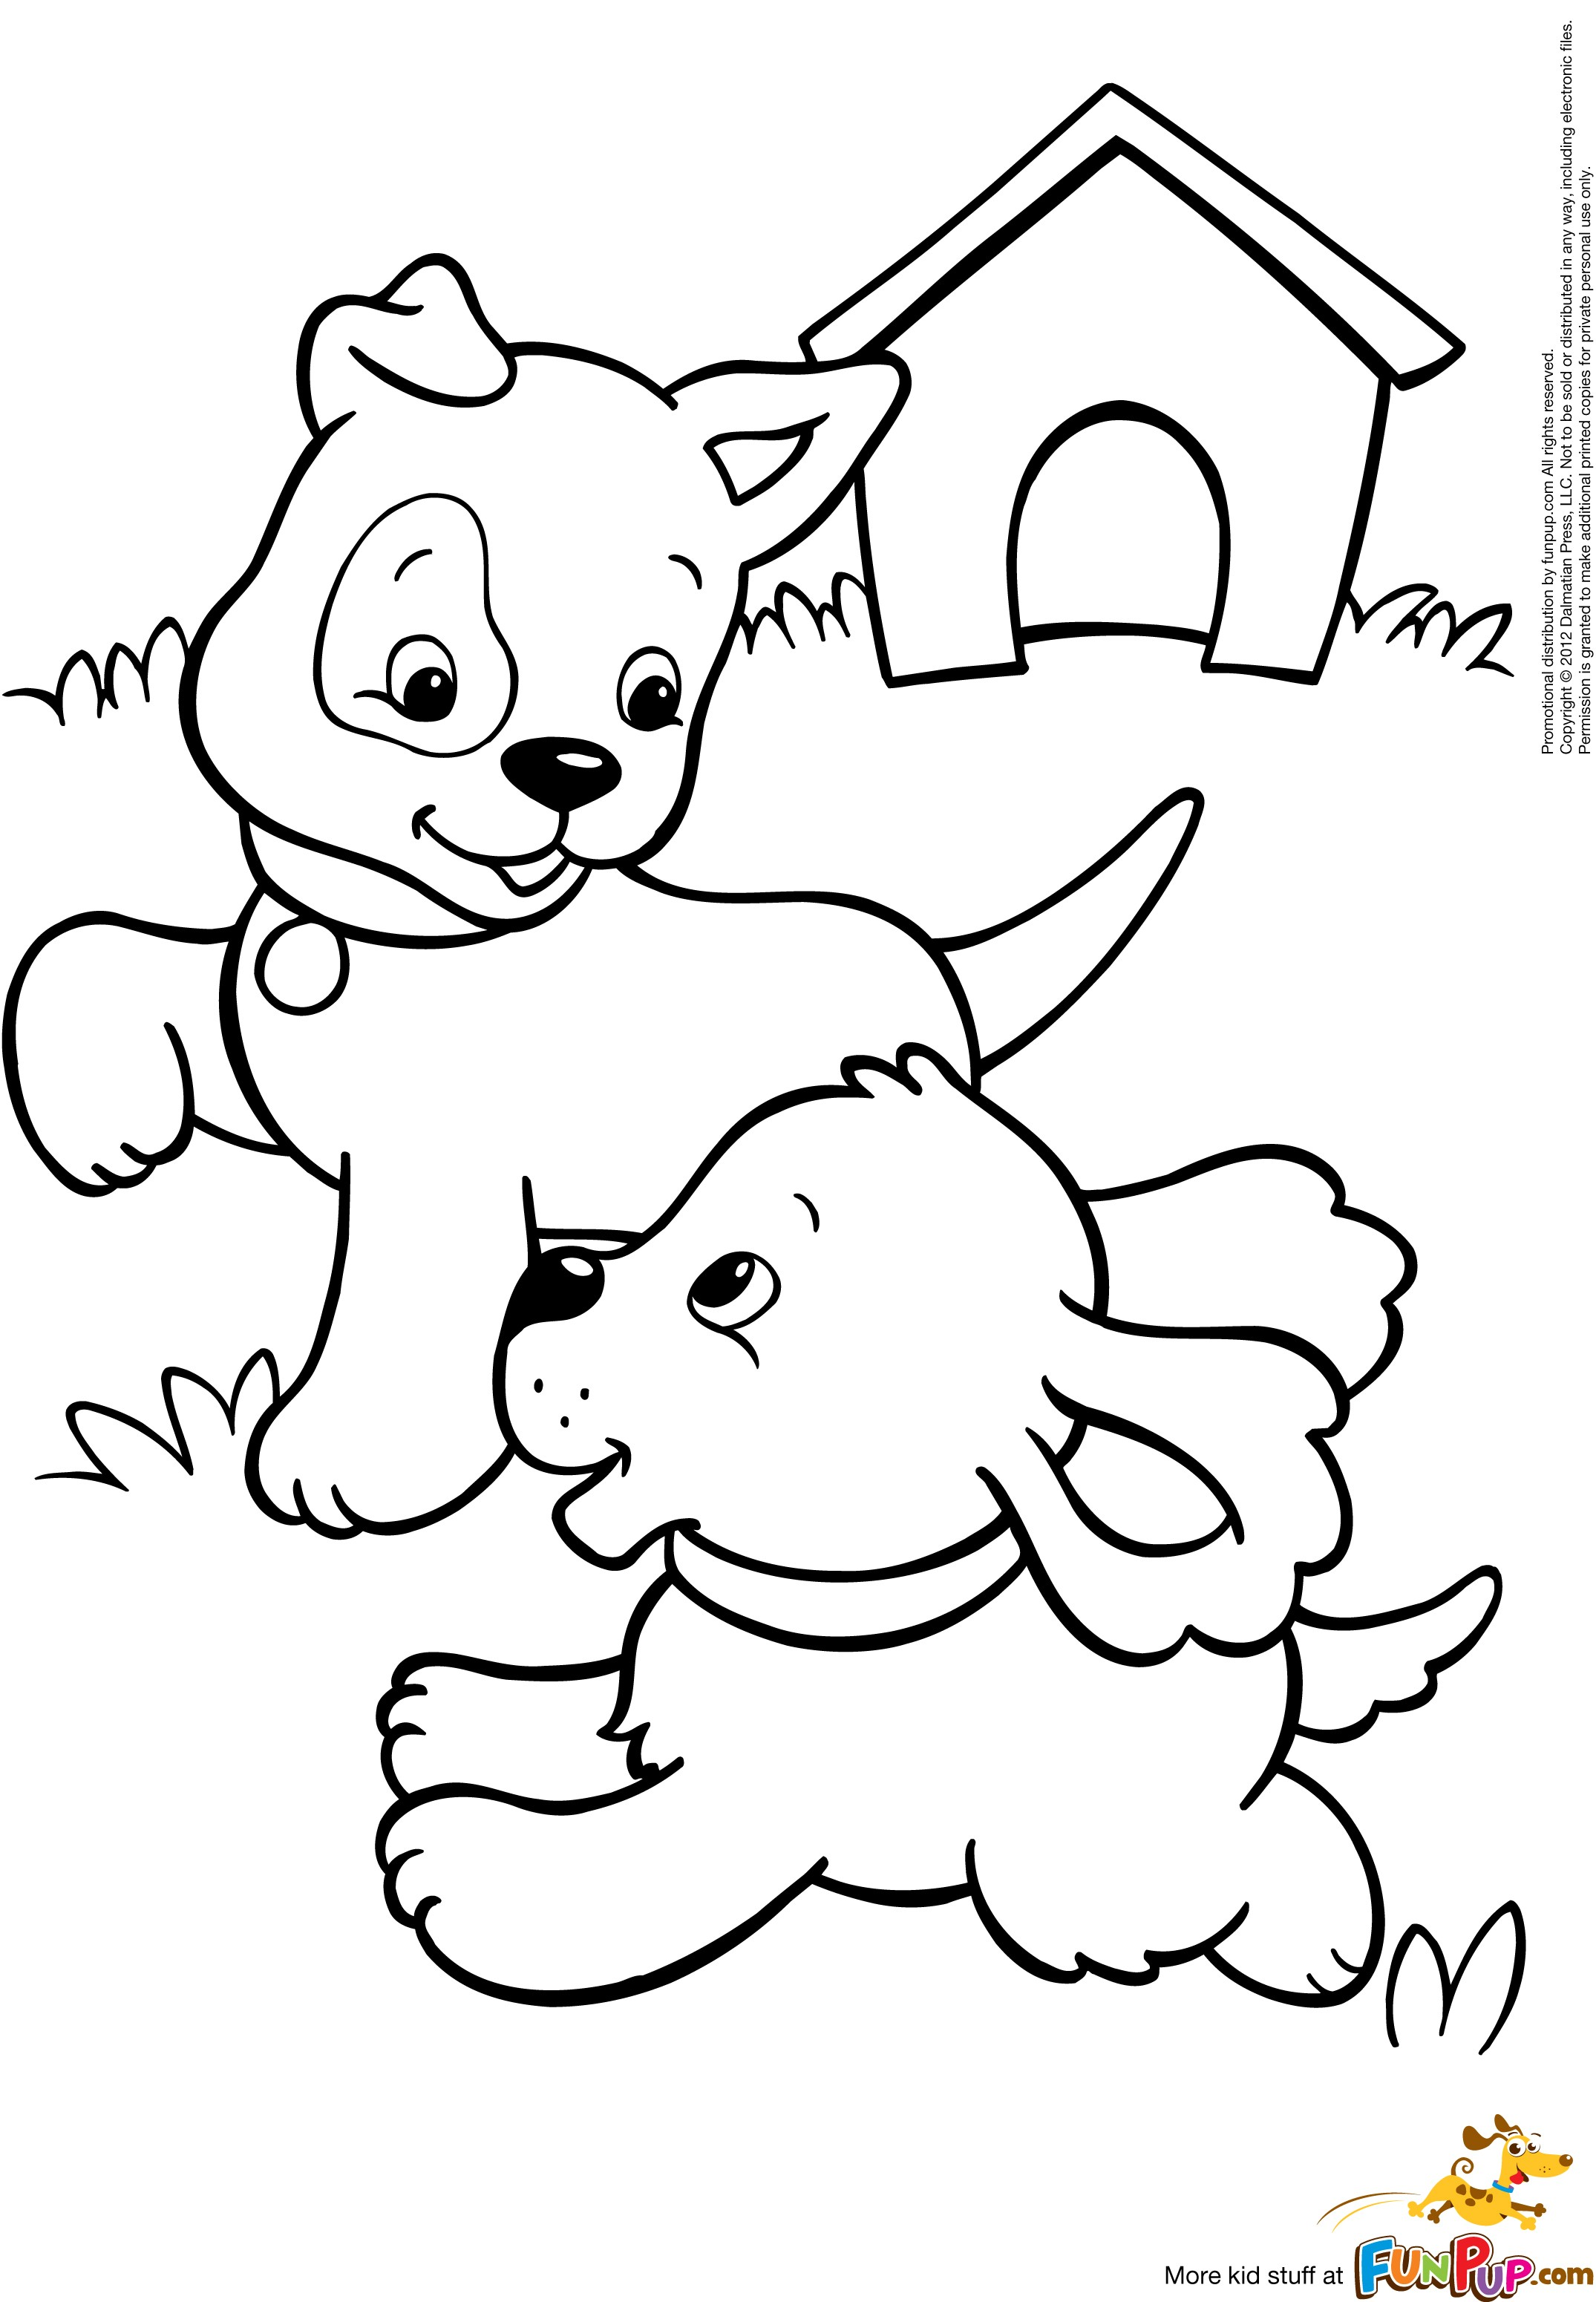 cute dogs coloring pages free printable puppies coloring pages for kids dogs cute coloring pages